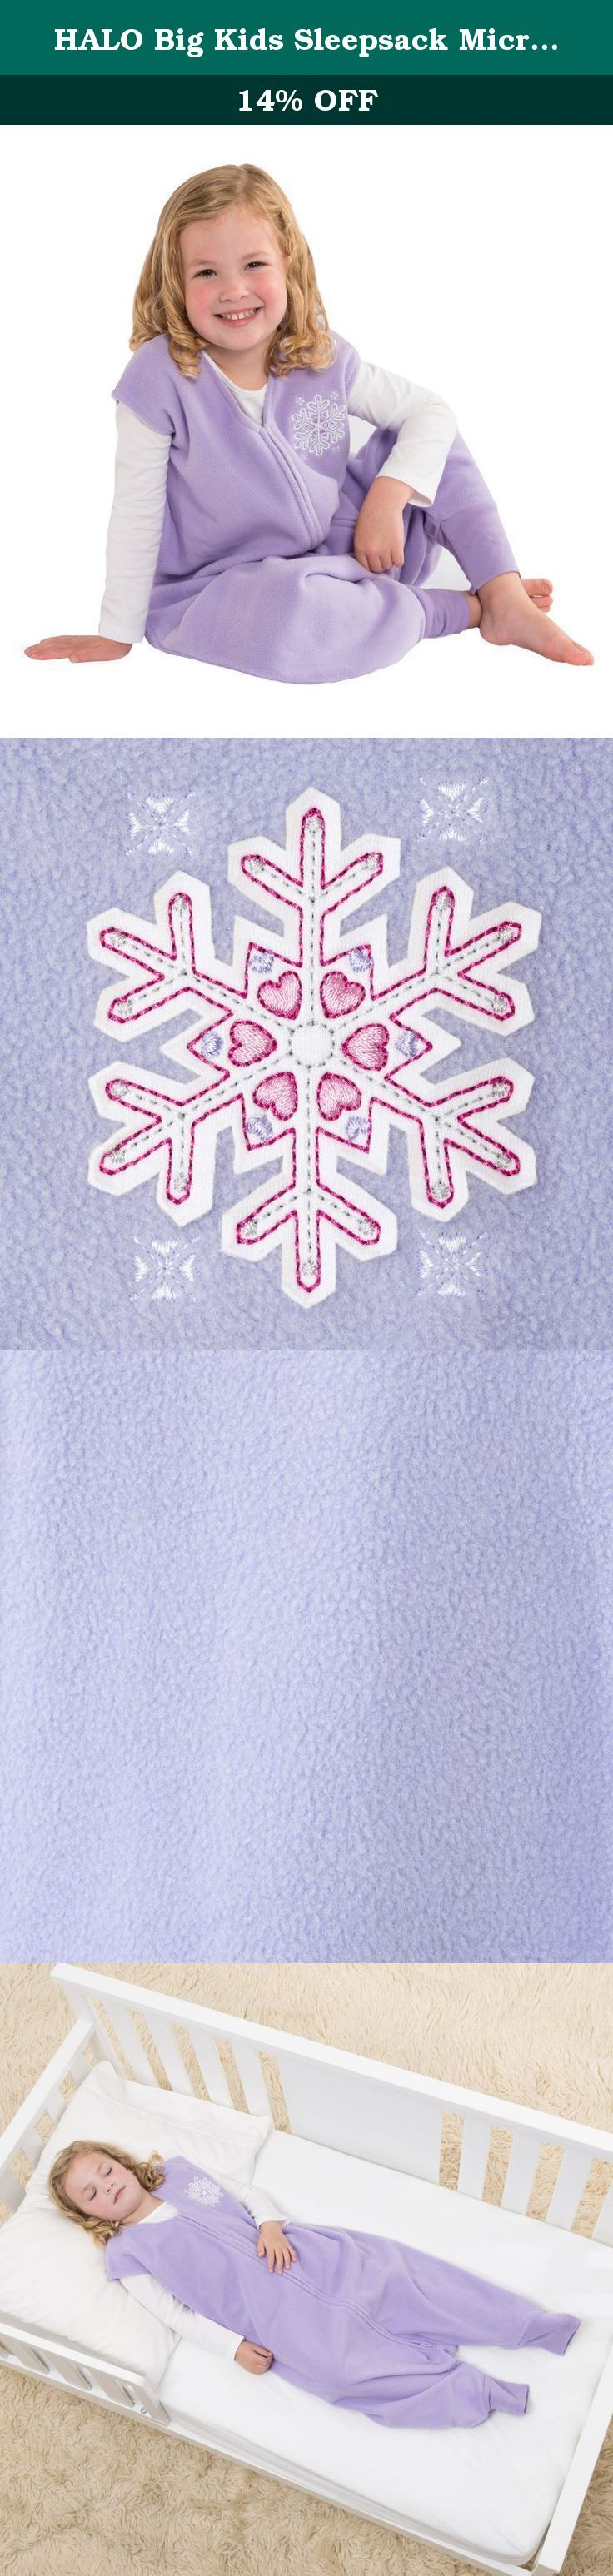 HALO Big Kids Sleepsack Micro Fleece Wearable Blanket, Lilac Snowflake, 4-5T. HALO SleepSack Big Kids: Helps kids sleep safe and sound. The HALO SleepSack Big Kids becomes a trusted bedtime routine, providing the secure feeling your child needs to fall asleep fast and sleep soundly throughout the night. It is a warm cuddly blanket they cannot kick off; ensuring little ones sleep well and stay covered throughout the night. With its unique foot openings, the SleepSack Big Kids wearable…